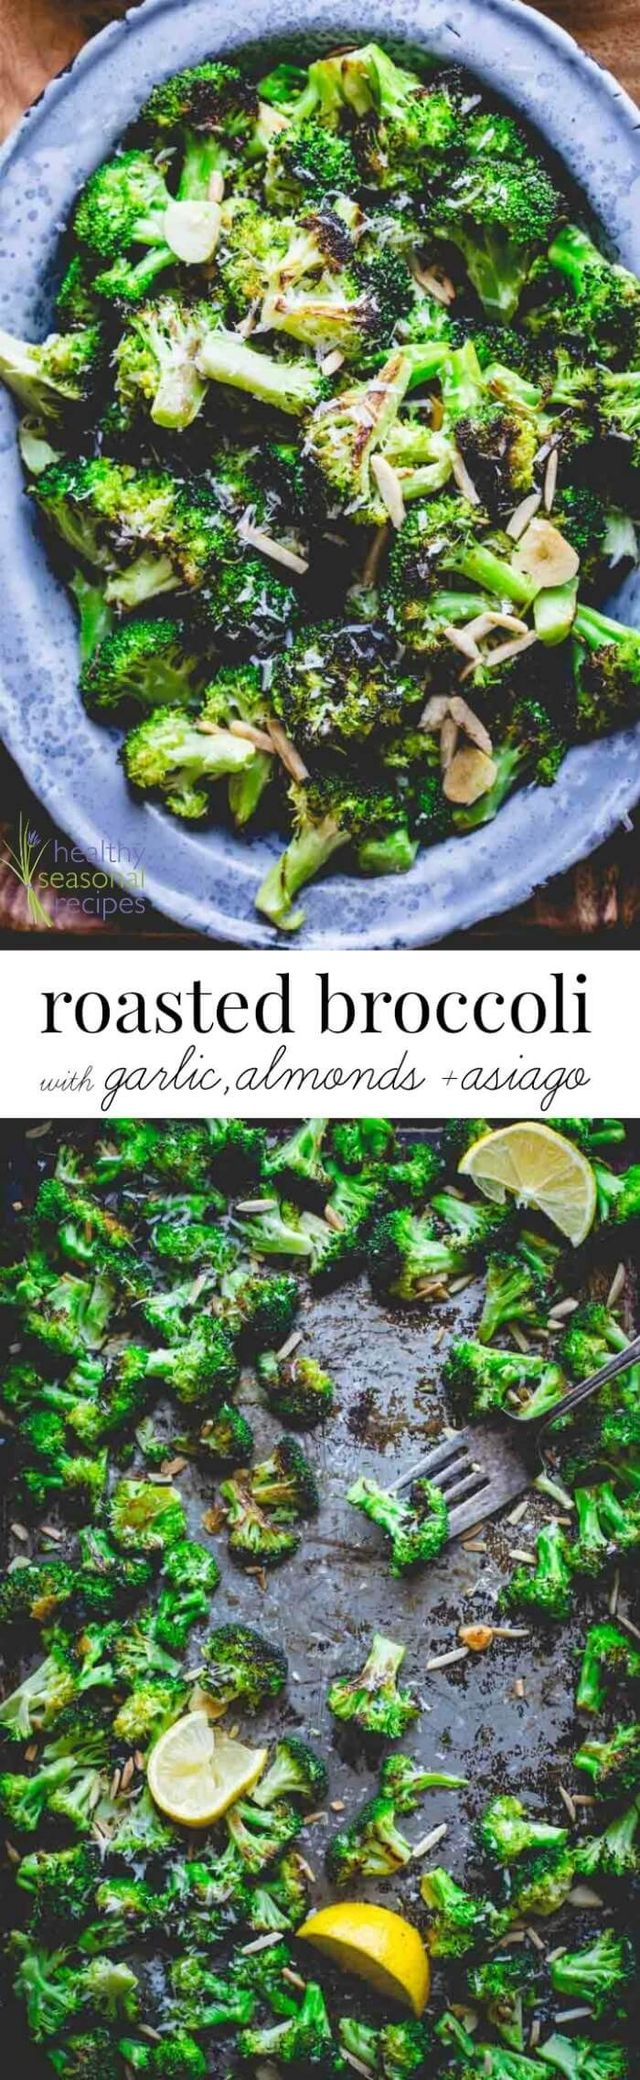 Roasted broccoli with asiago, garlic and almonds - Blog post at Healthy Seasonal Recipes : Do you roast your veggies? If not, then stop what you are doing right now and make this Roasted Broccoli with Asiago, Garlic and Almonds!! [..]